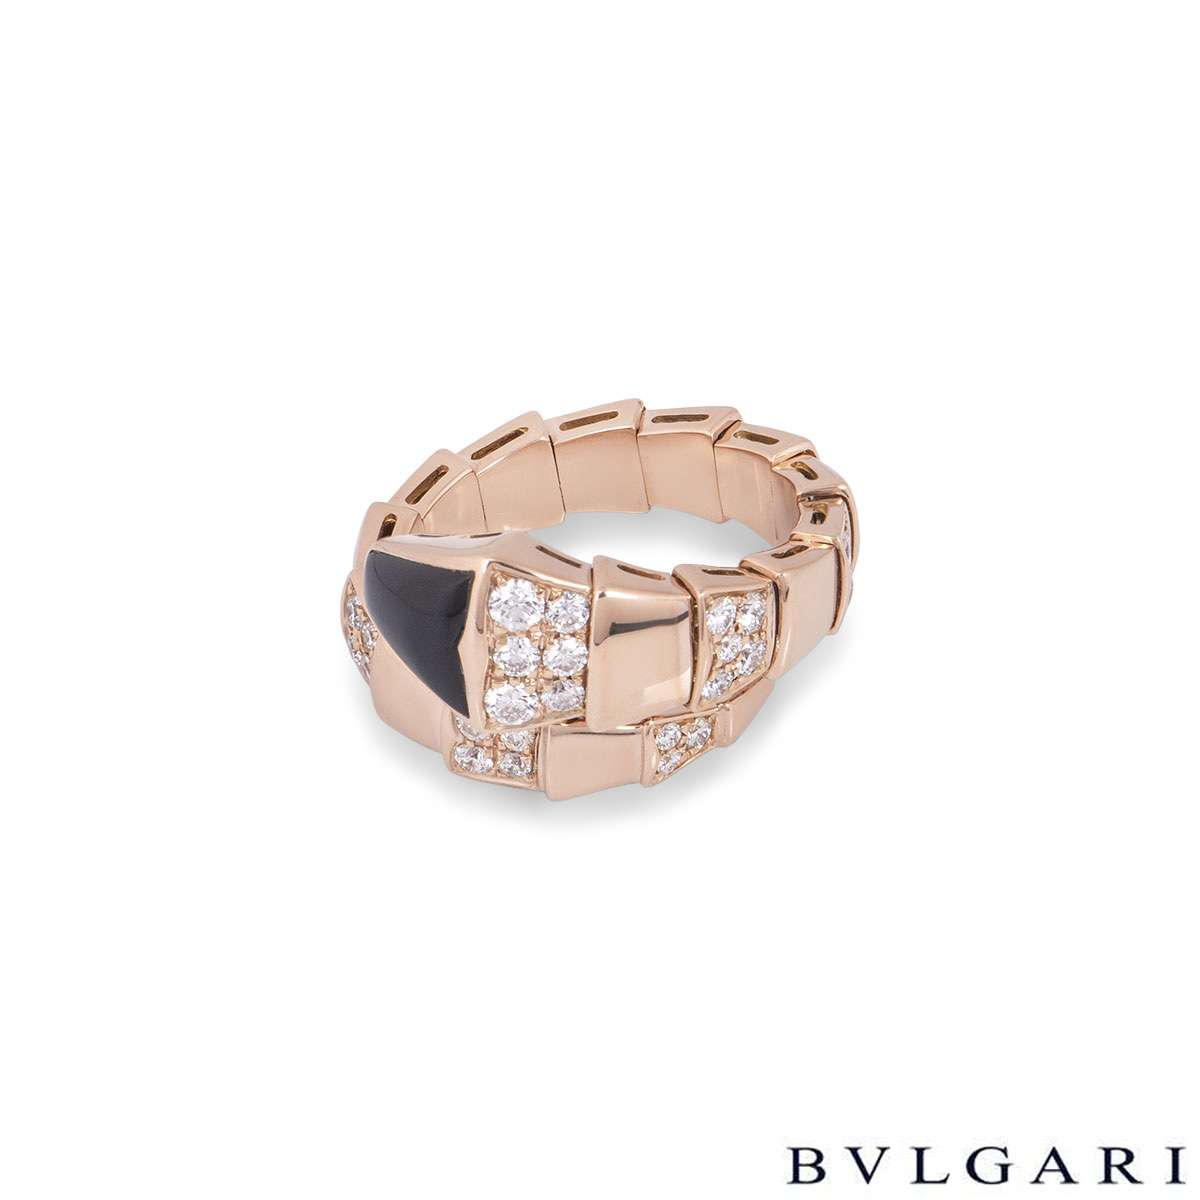 Bvlgari Rose Gold Diamond & Onyx Serpenti Ring